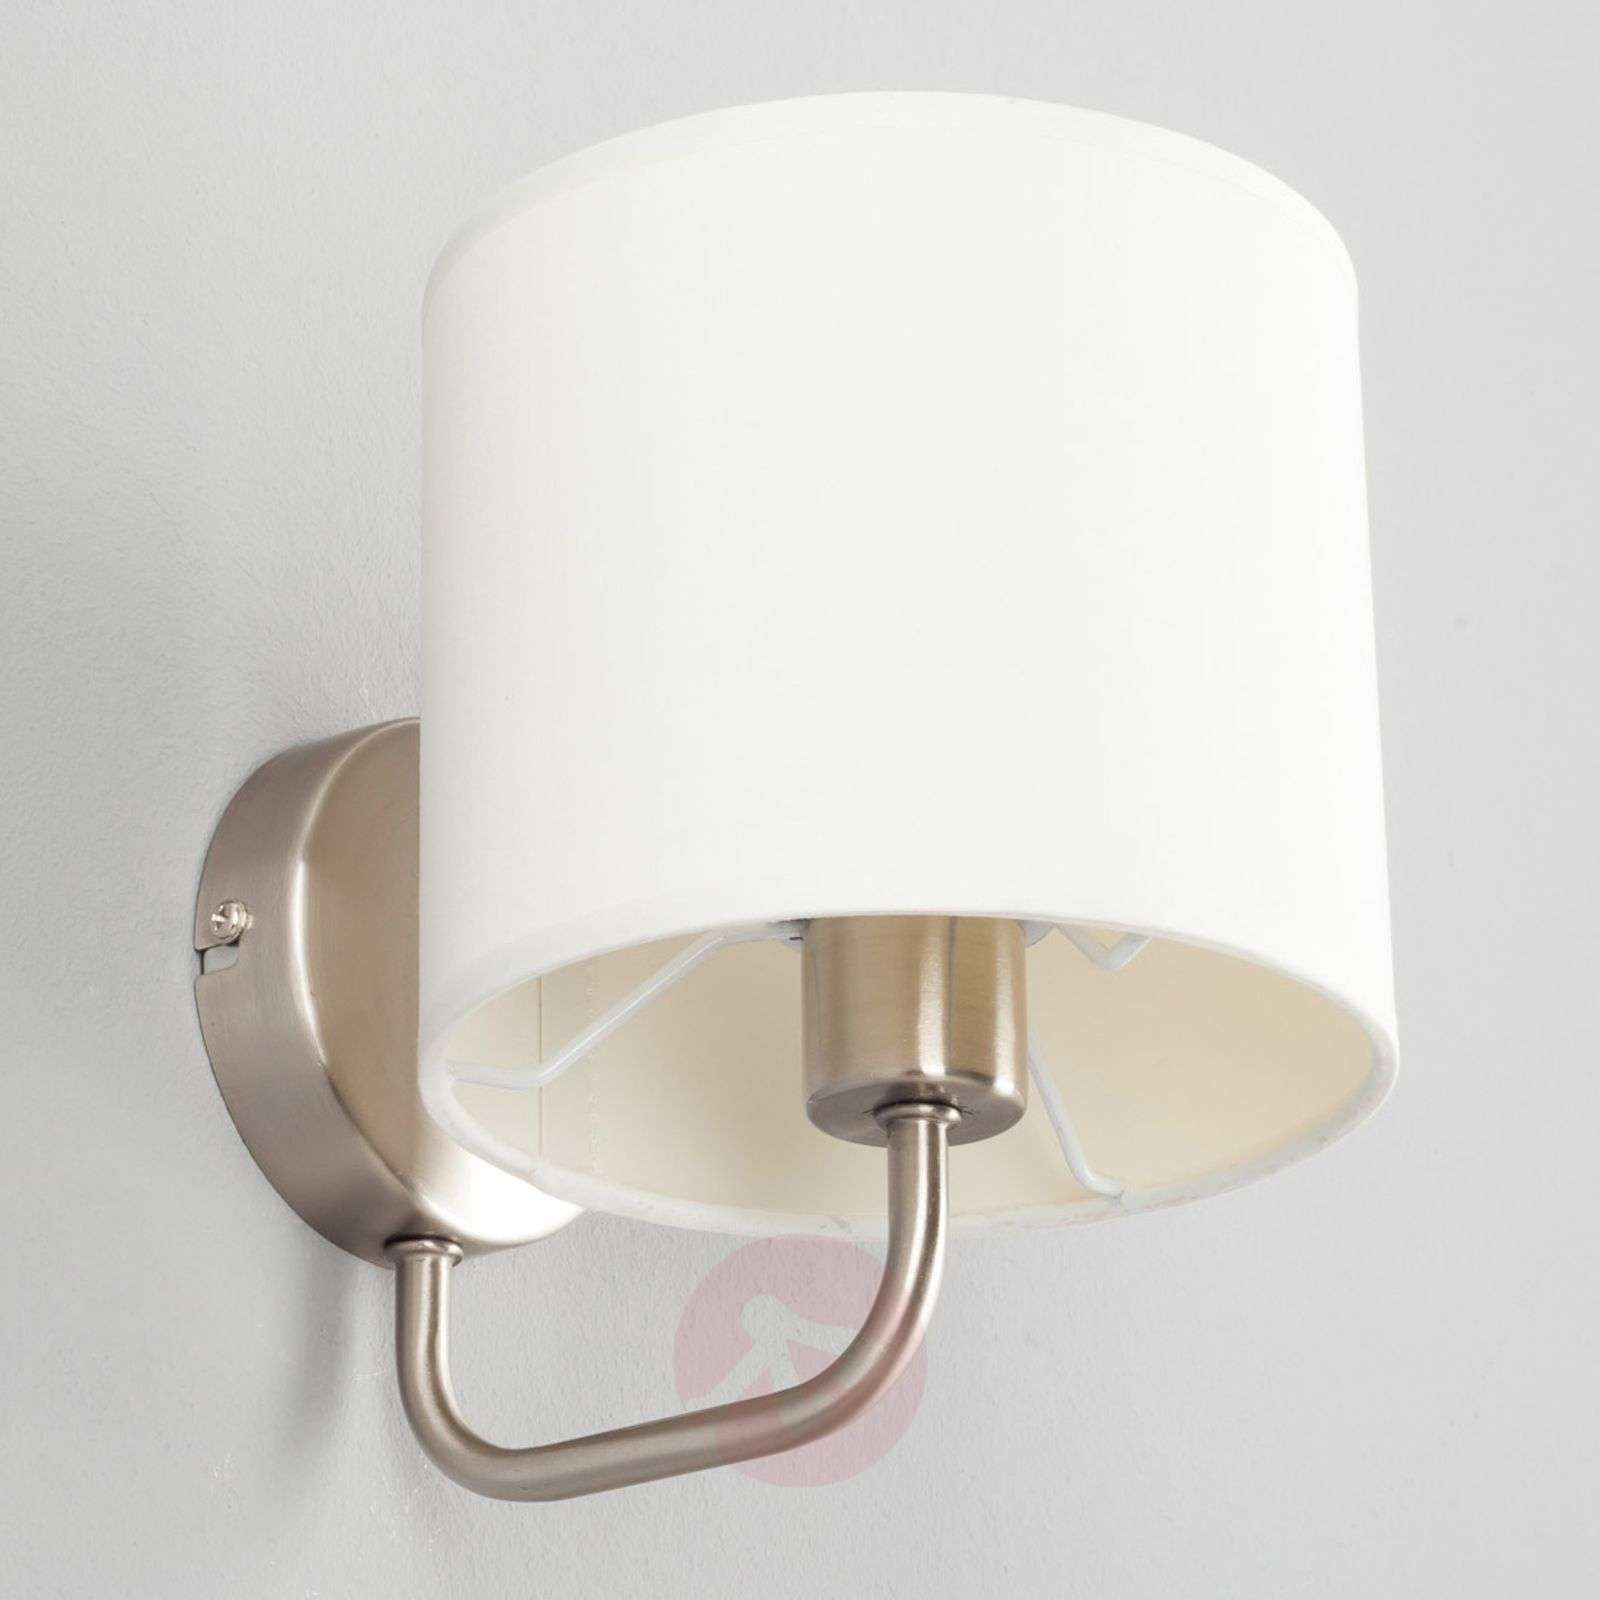 White fabric wall light Fenria with E14 LED-9970031-01